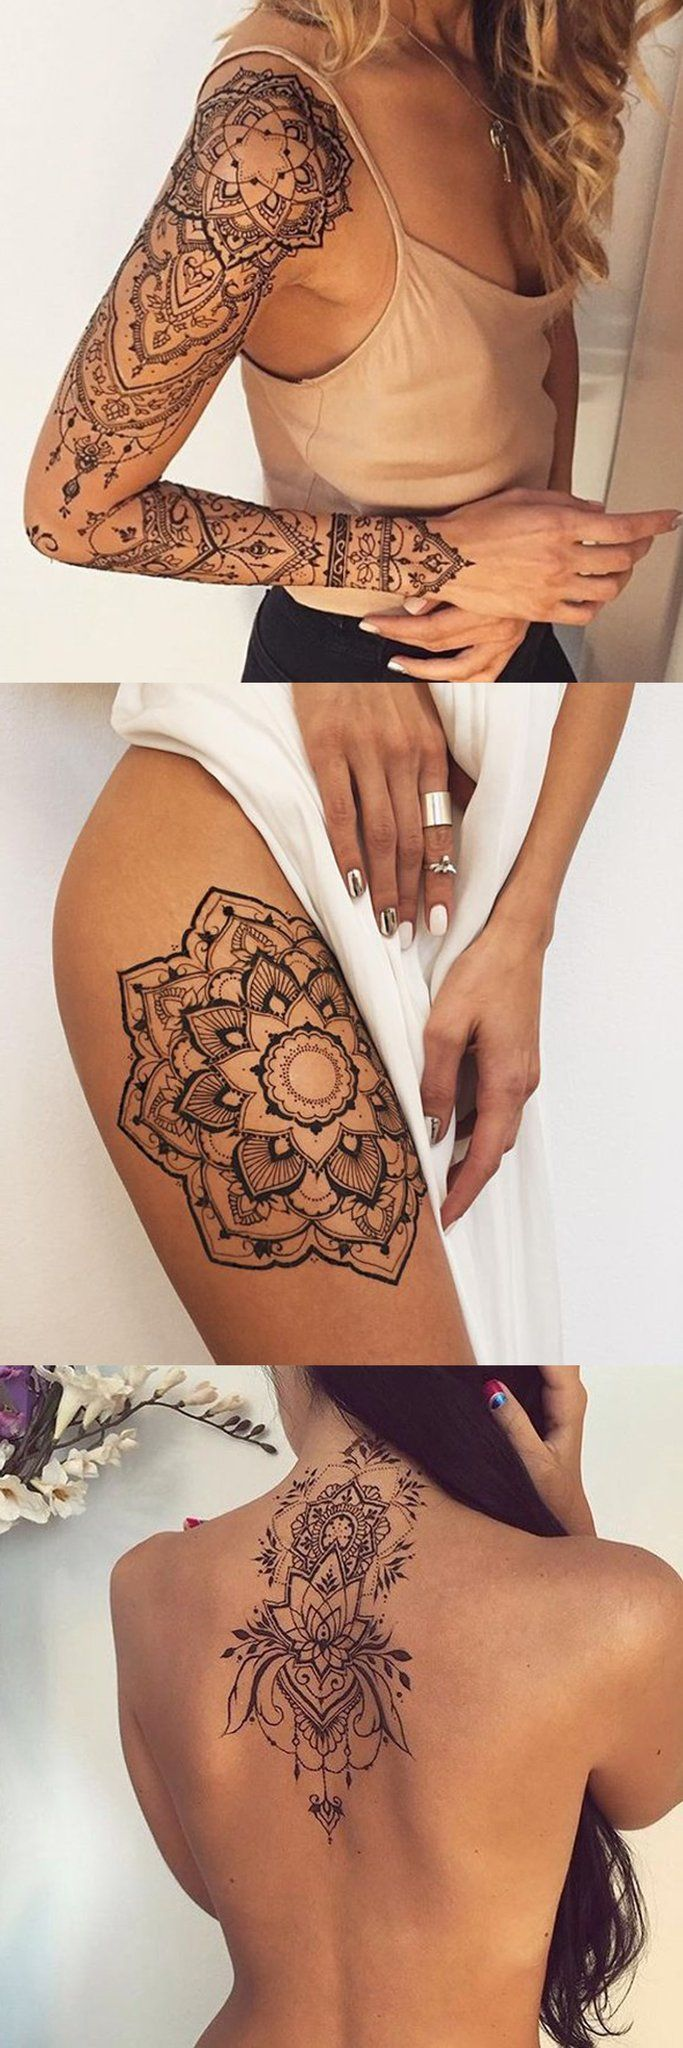 30 mandala tattoo ideas that will always be popular. Black Bedroom Furniture Sets. Home Design Ideas